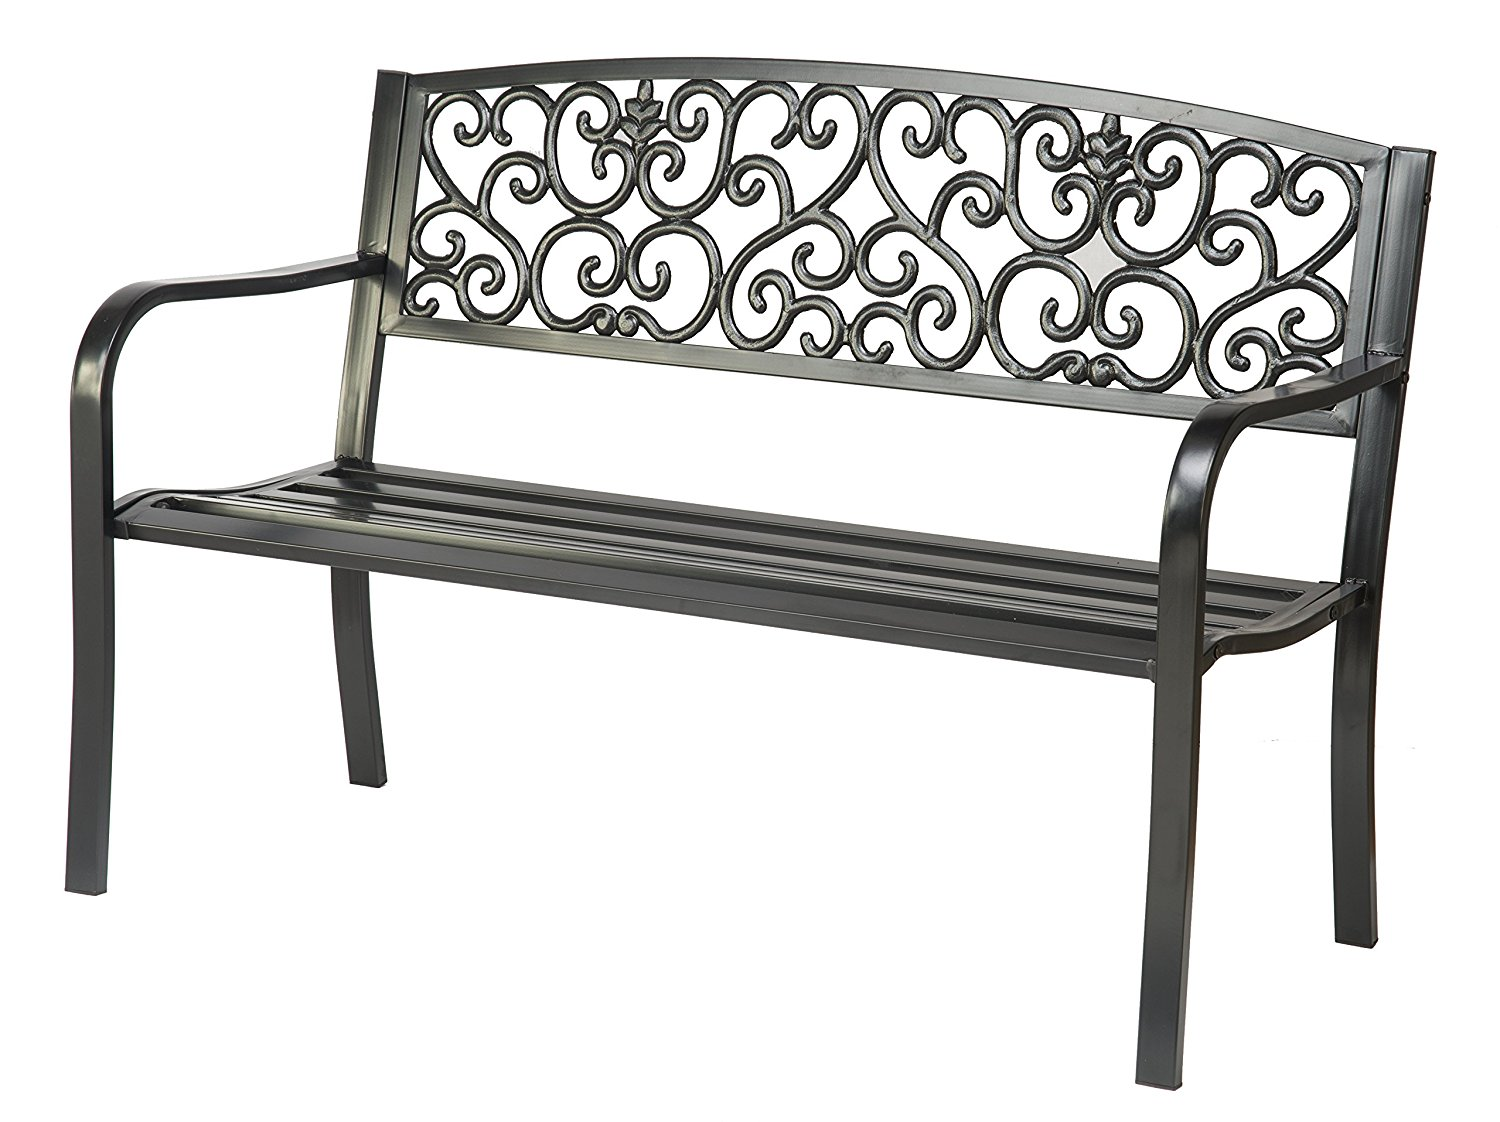 Incredible Top 10 Best Outdoor Benches In 2019 Reviews Tophomestuff Gmtry Best Dining Table And Chair Ideas Images Gmtryco